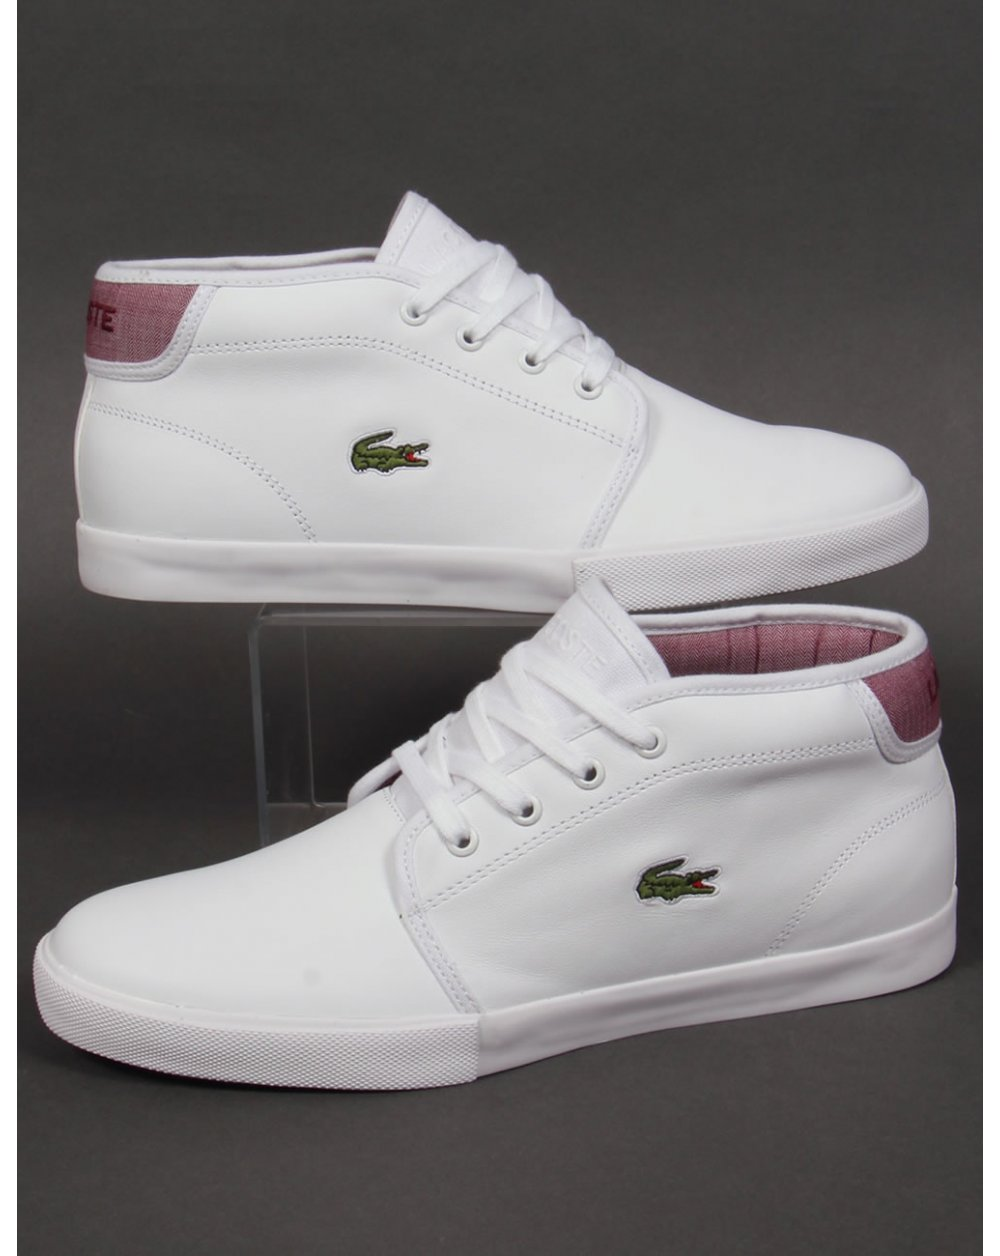 3e3450bf01af Lacoste Lacoste Ampthill Leather Trainers White